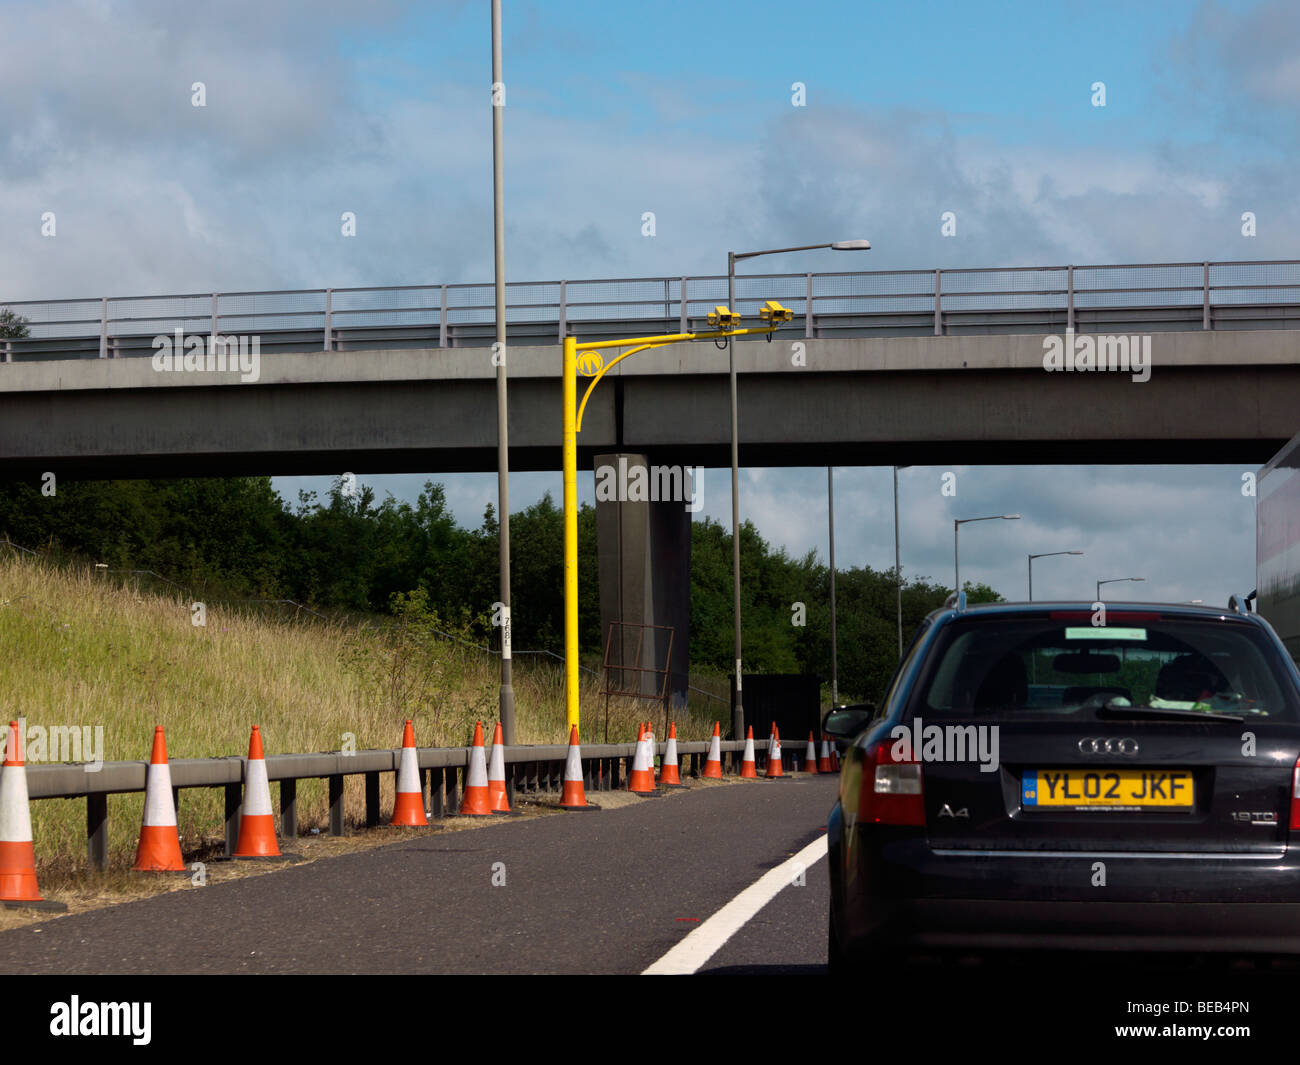 Average Speed Check Camera on a Motorway - Stock Image